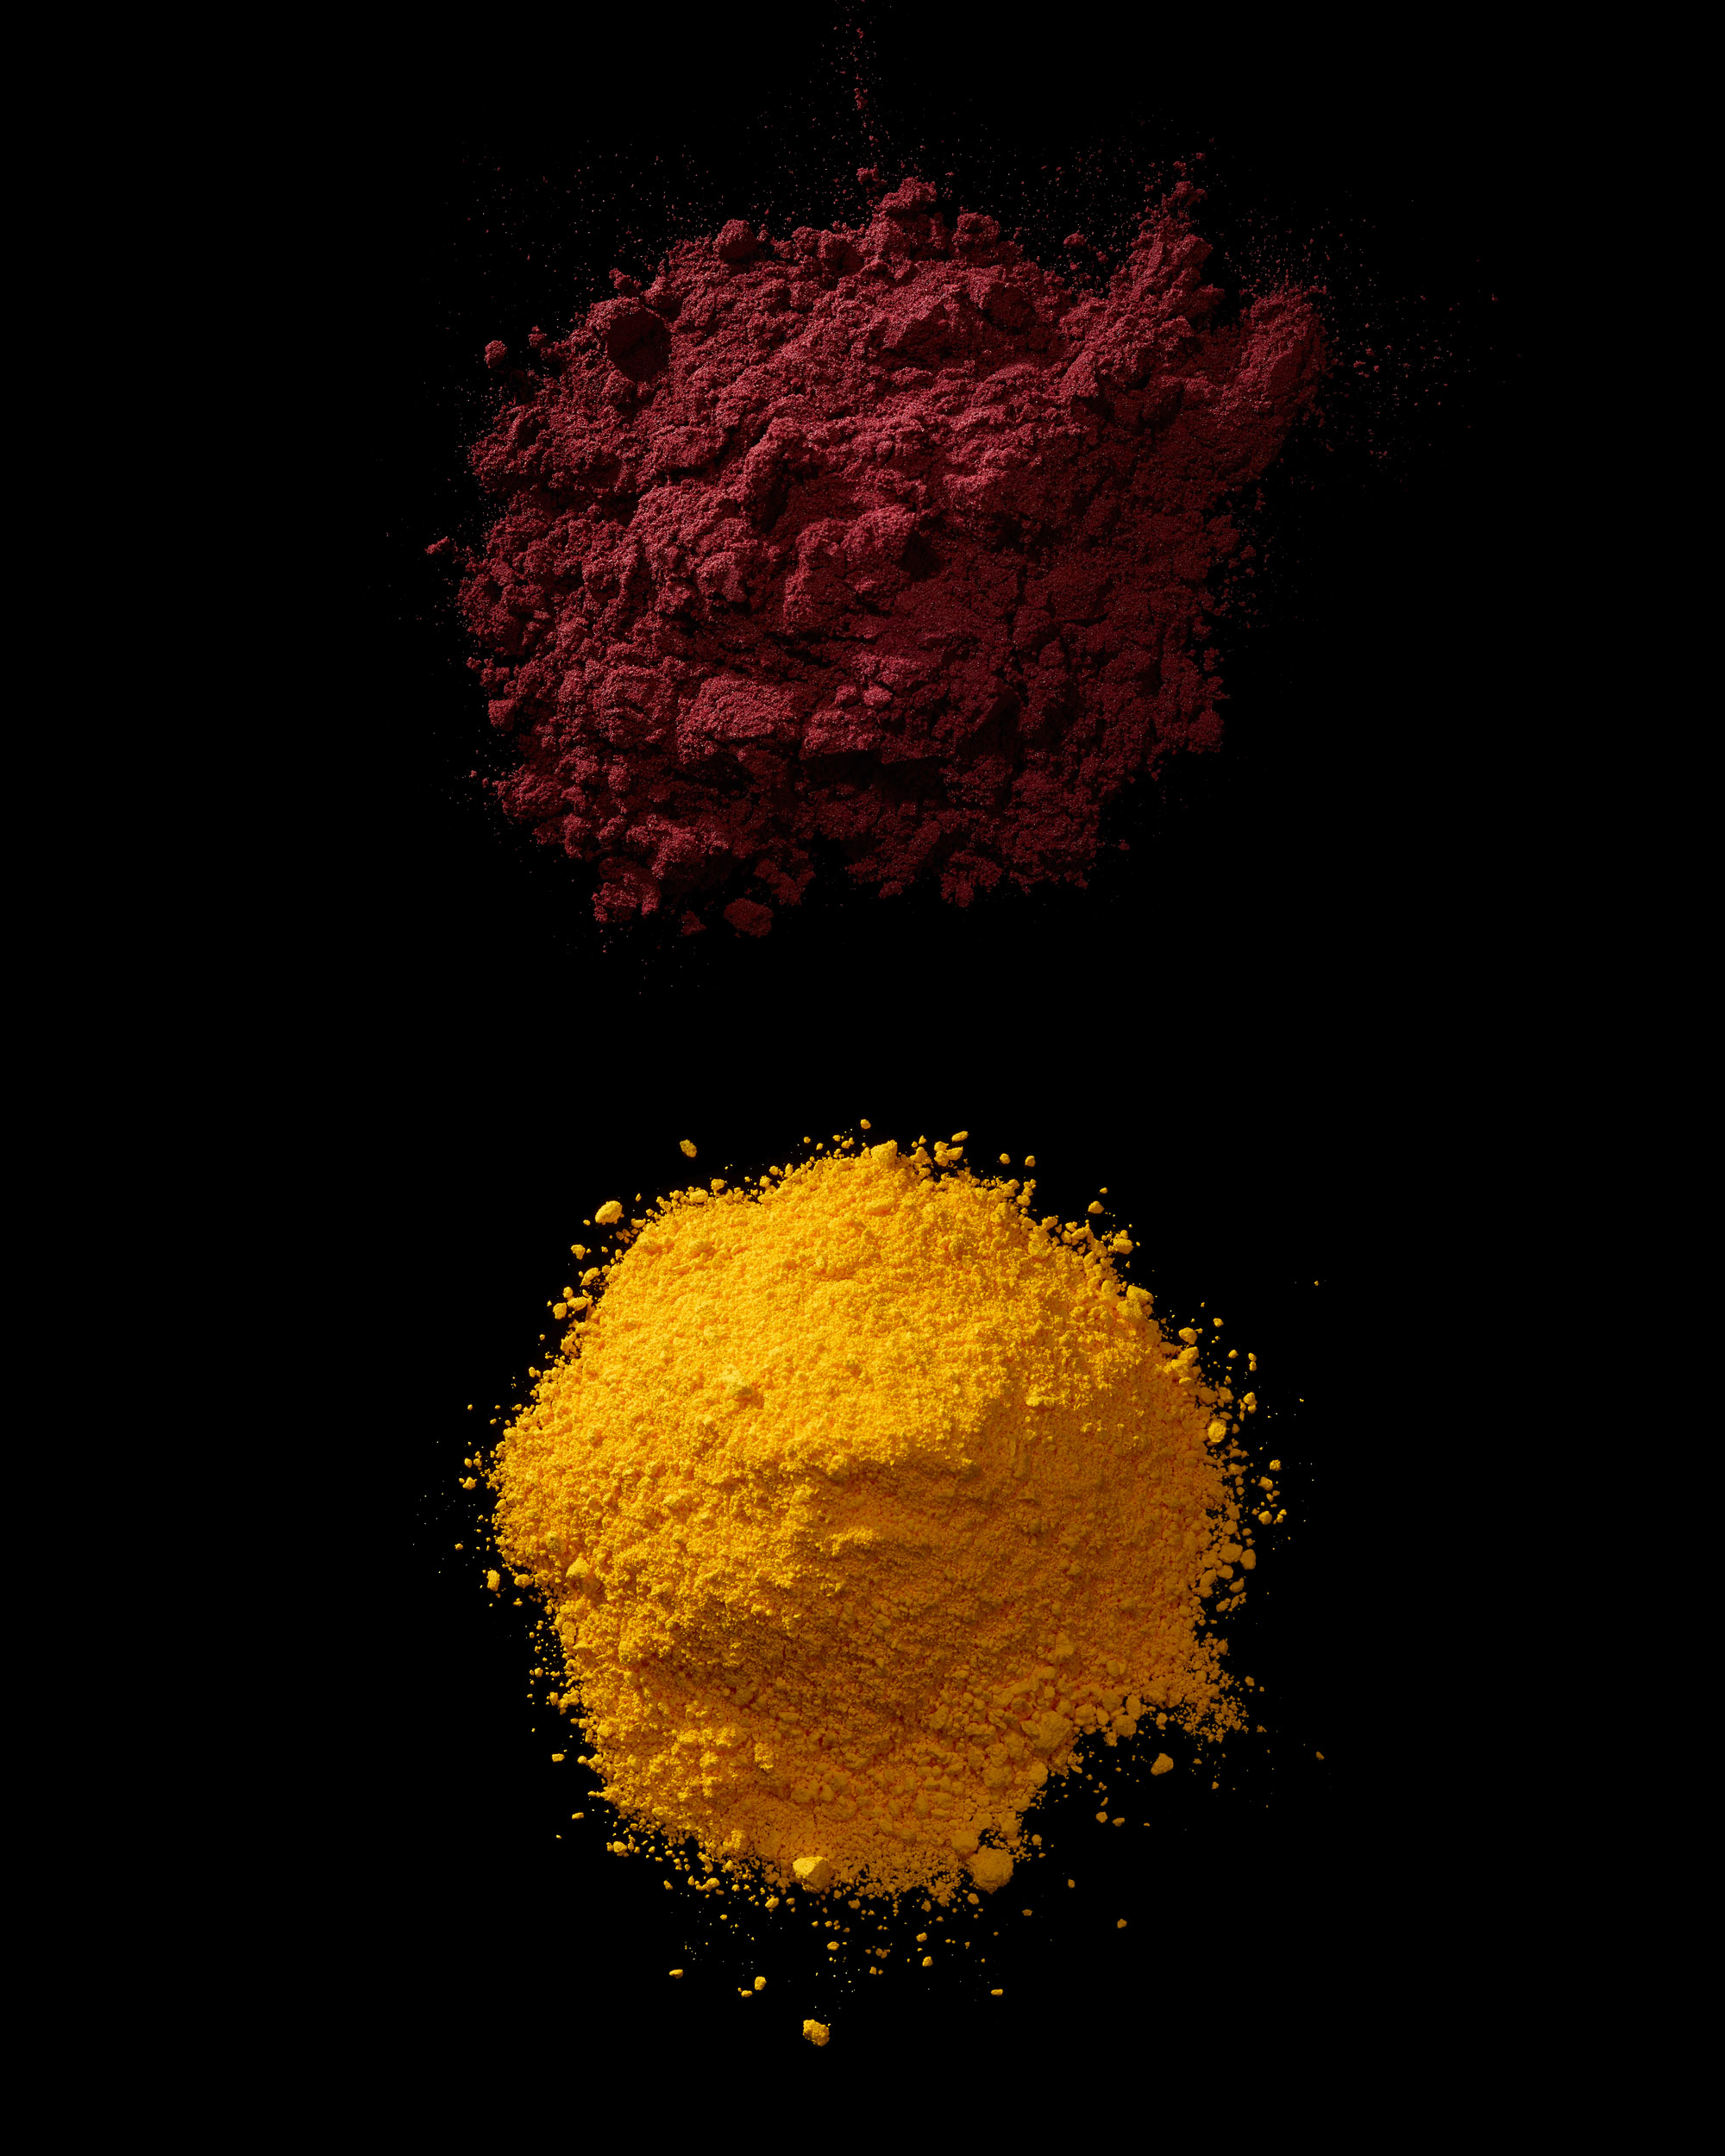 INGREDIENTS_55_Red 40 and Yellow 5